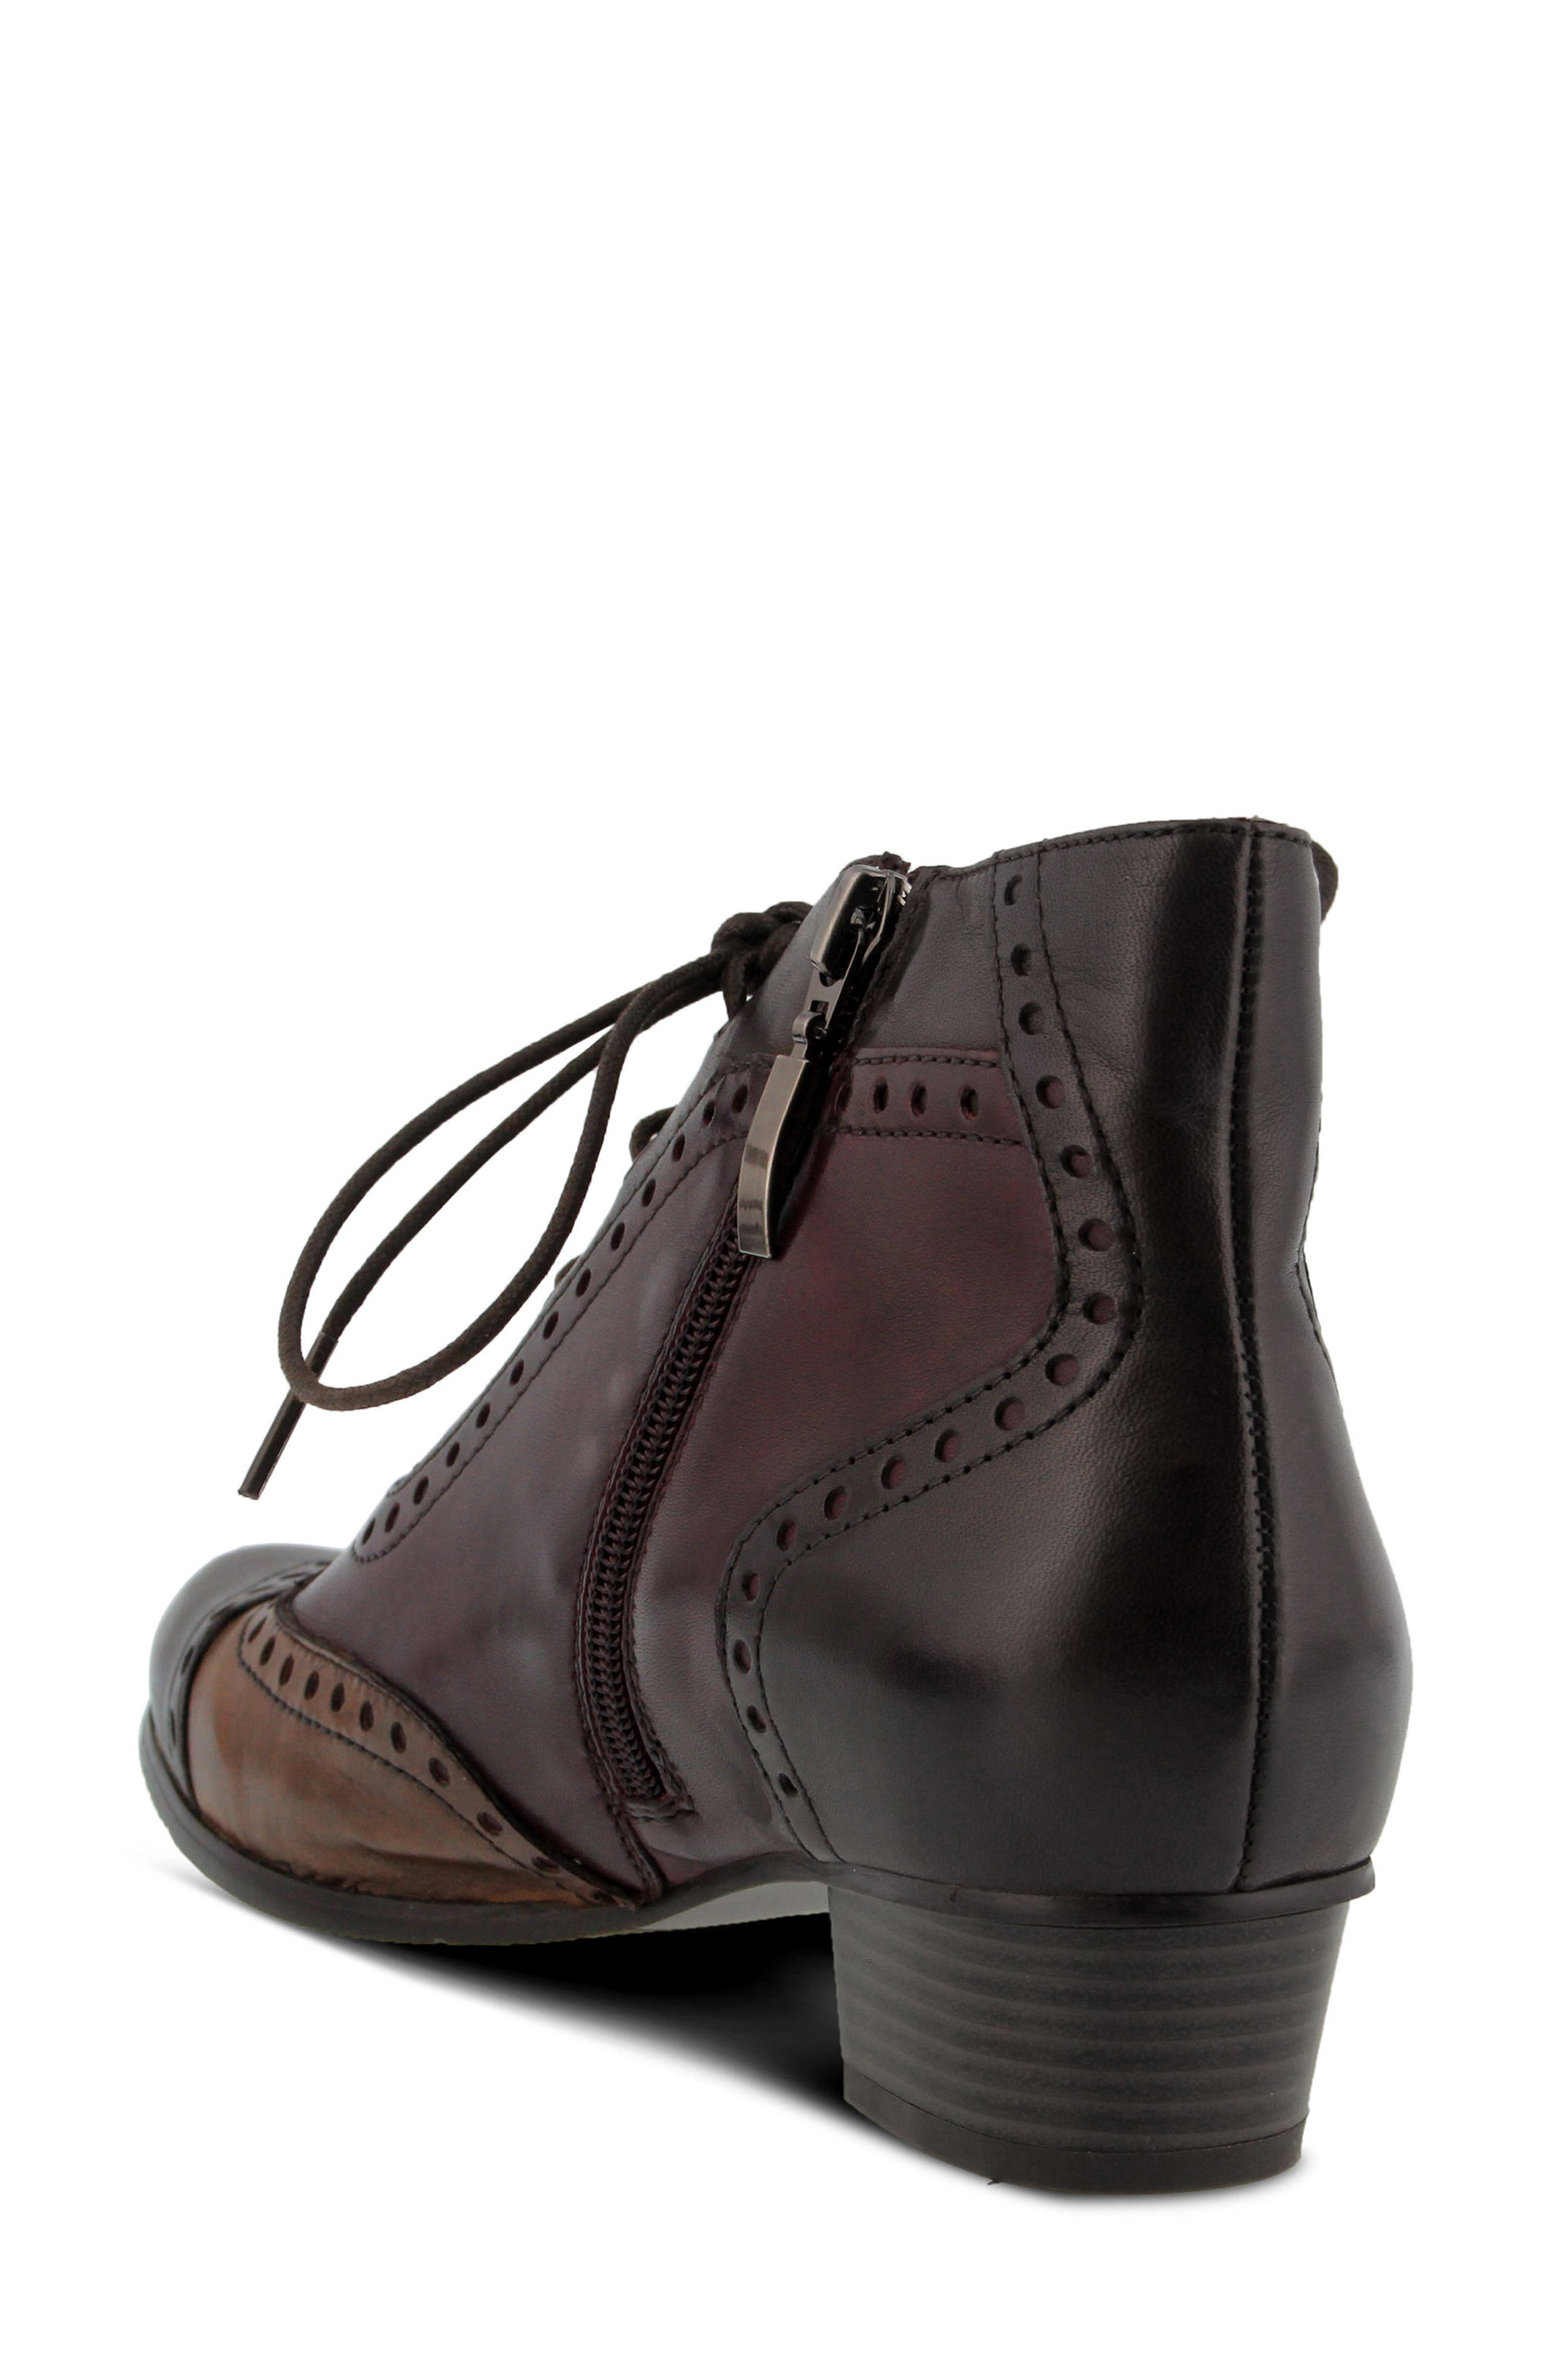 Heroic Bootie,                             Alternate thumbnail 2, color,                             Brown Multi Leather